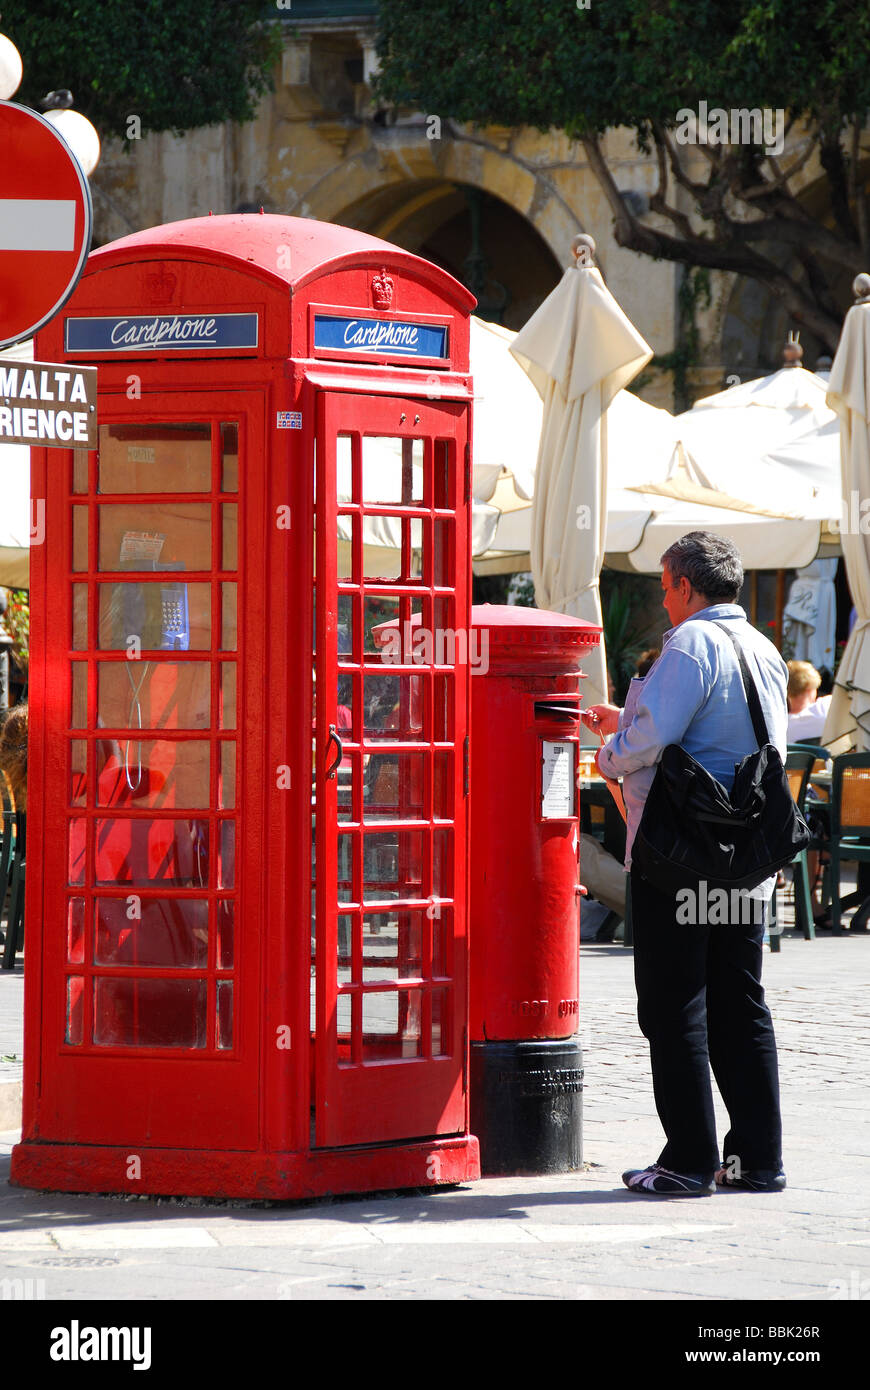 MALTA. A traditional red British phonebox and postbox on Republic Square in the centre of Valletta. 2009. Stock Photo